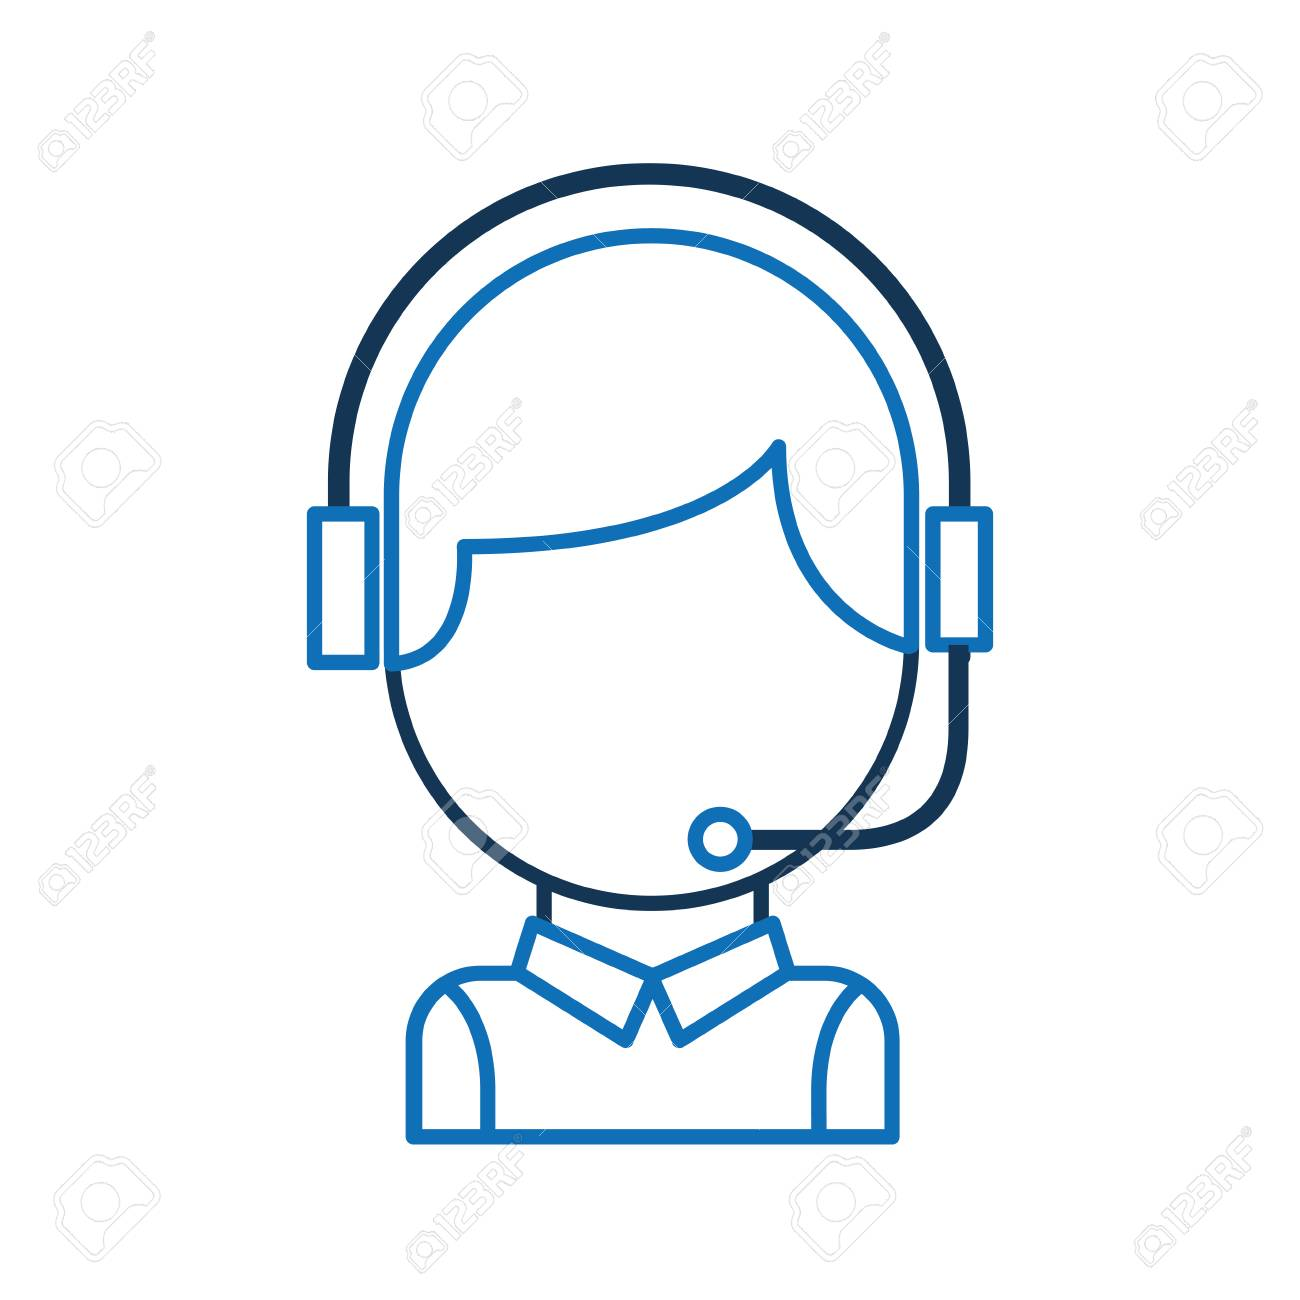 Call Center Operator With Phone Headset Vector Illustration Royalty Free Cliparts Vectors And Stock Illustration Image 86641705